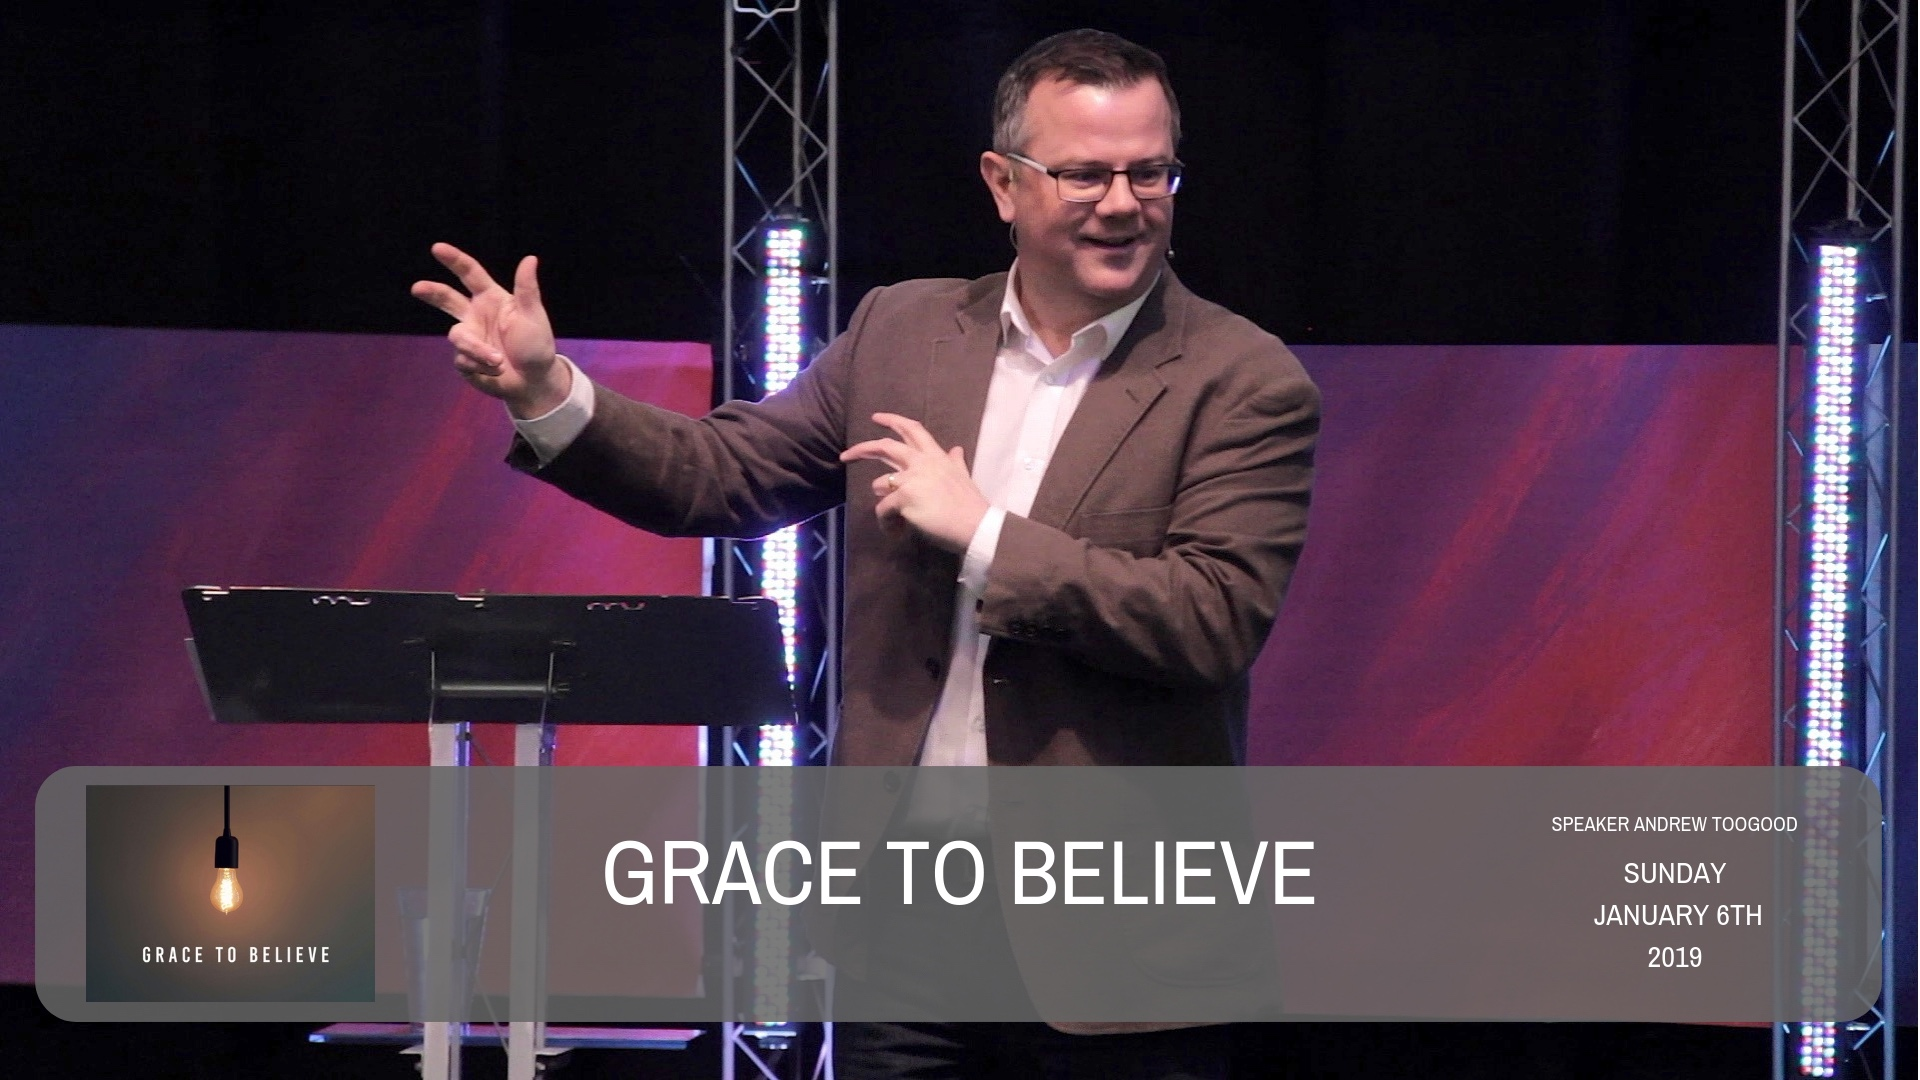 Grace to believe